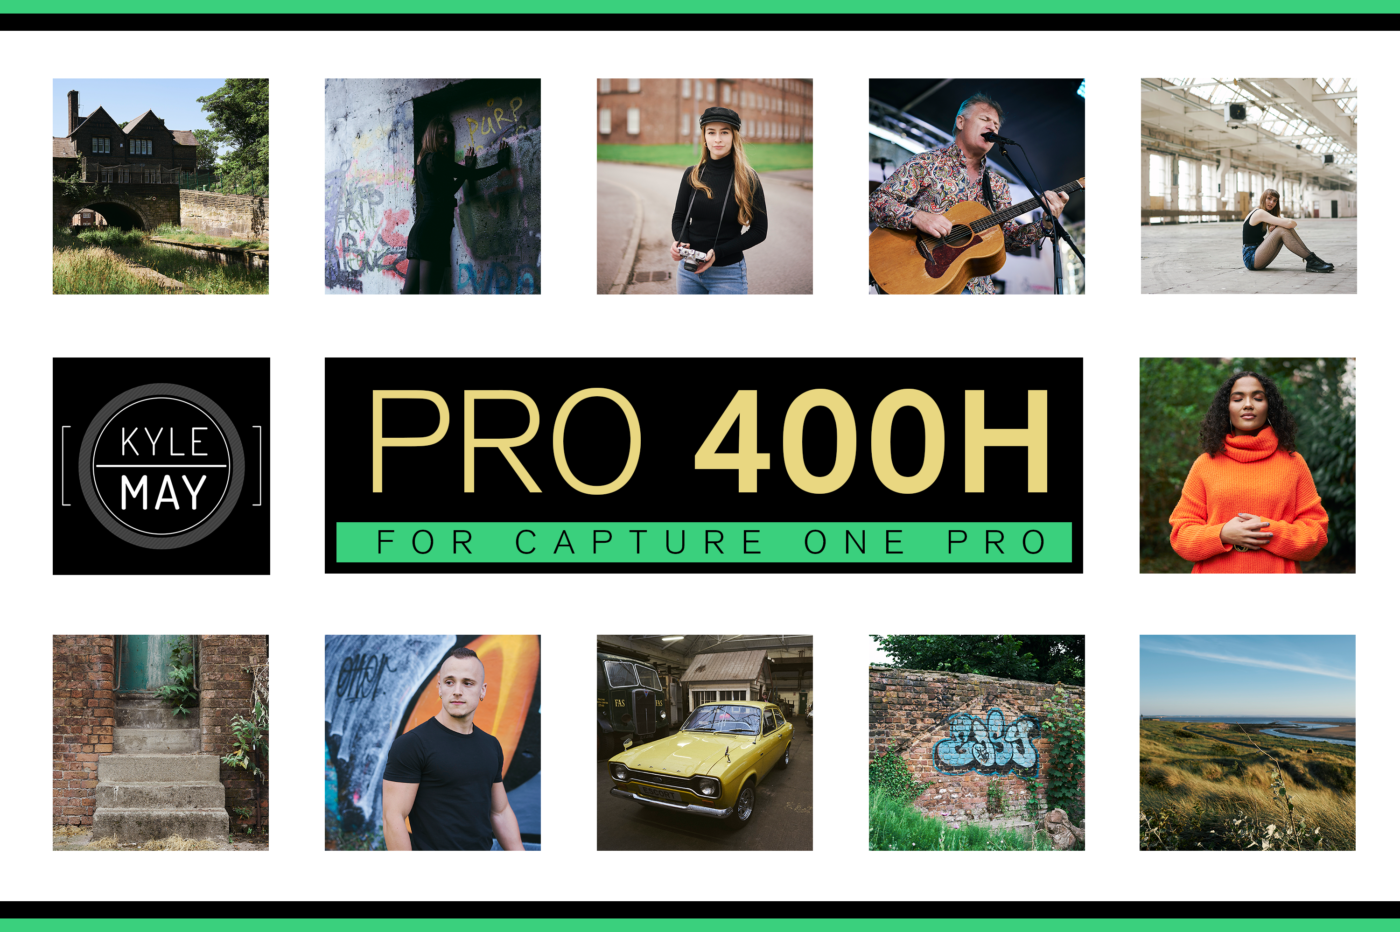 The Pro 400H Pack for Capture One Pro